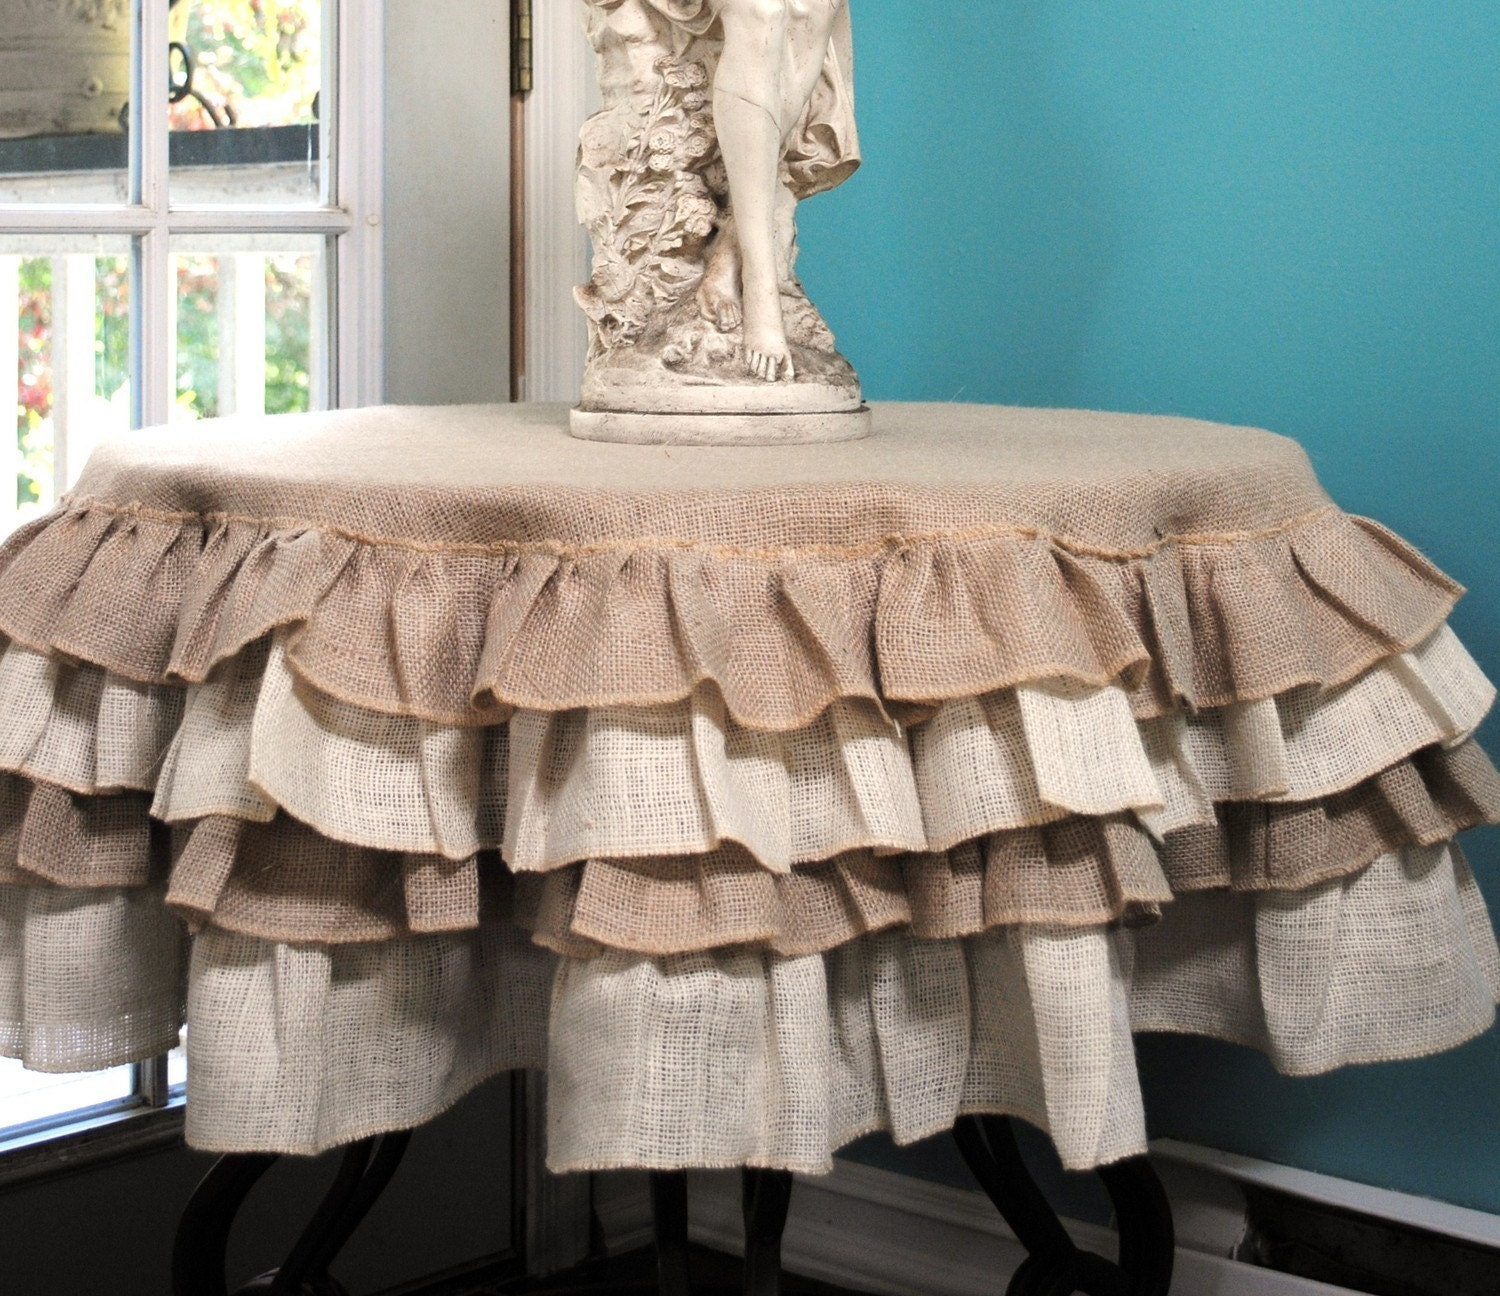 Ruffled Burlap Table Cloth by PaulaAndErika on Etsy